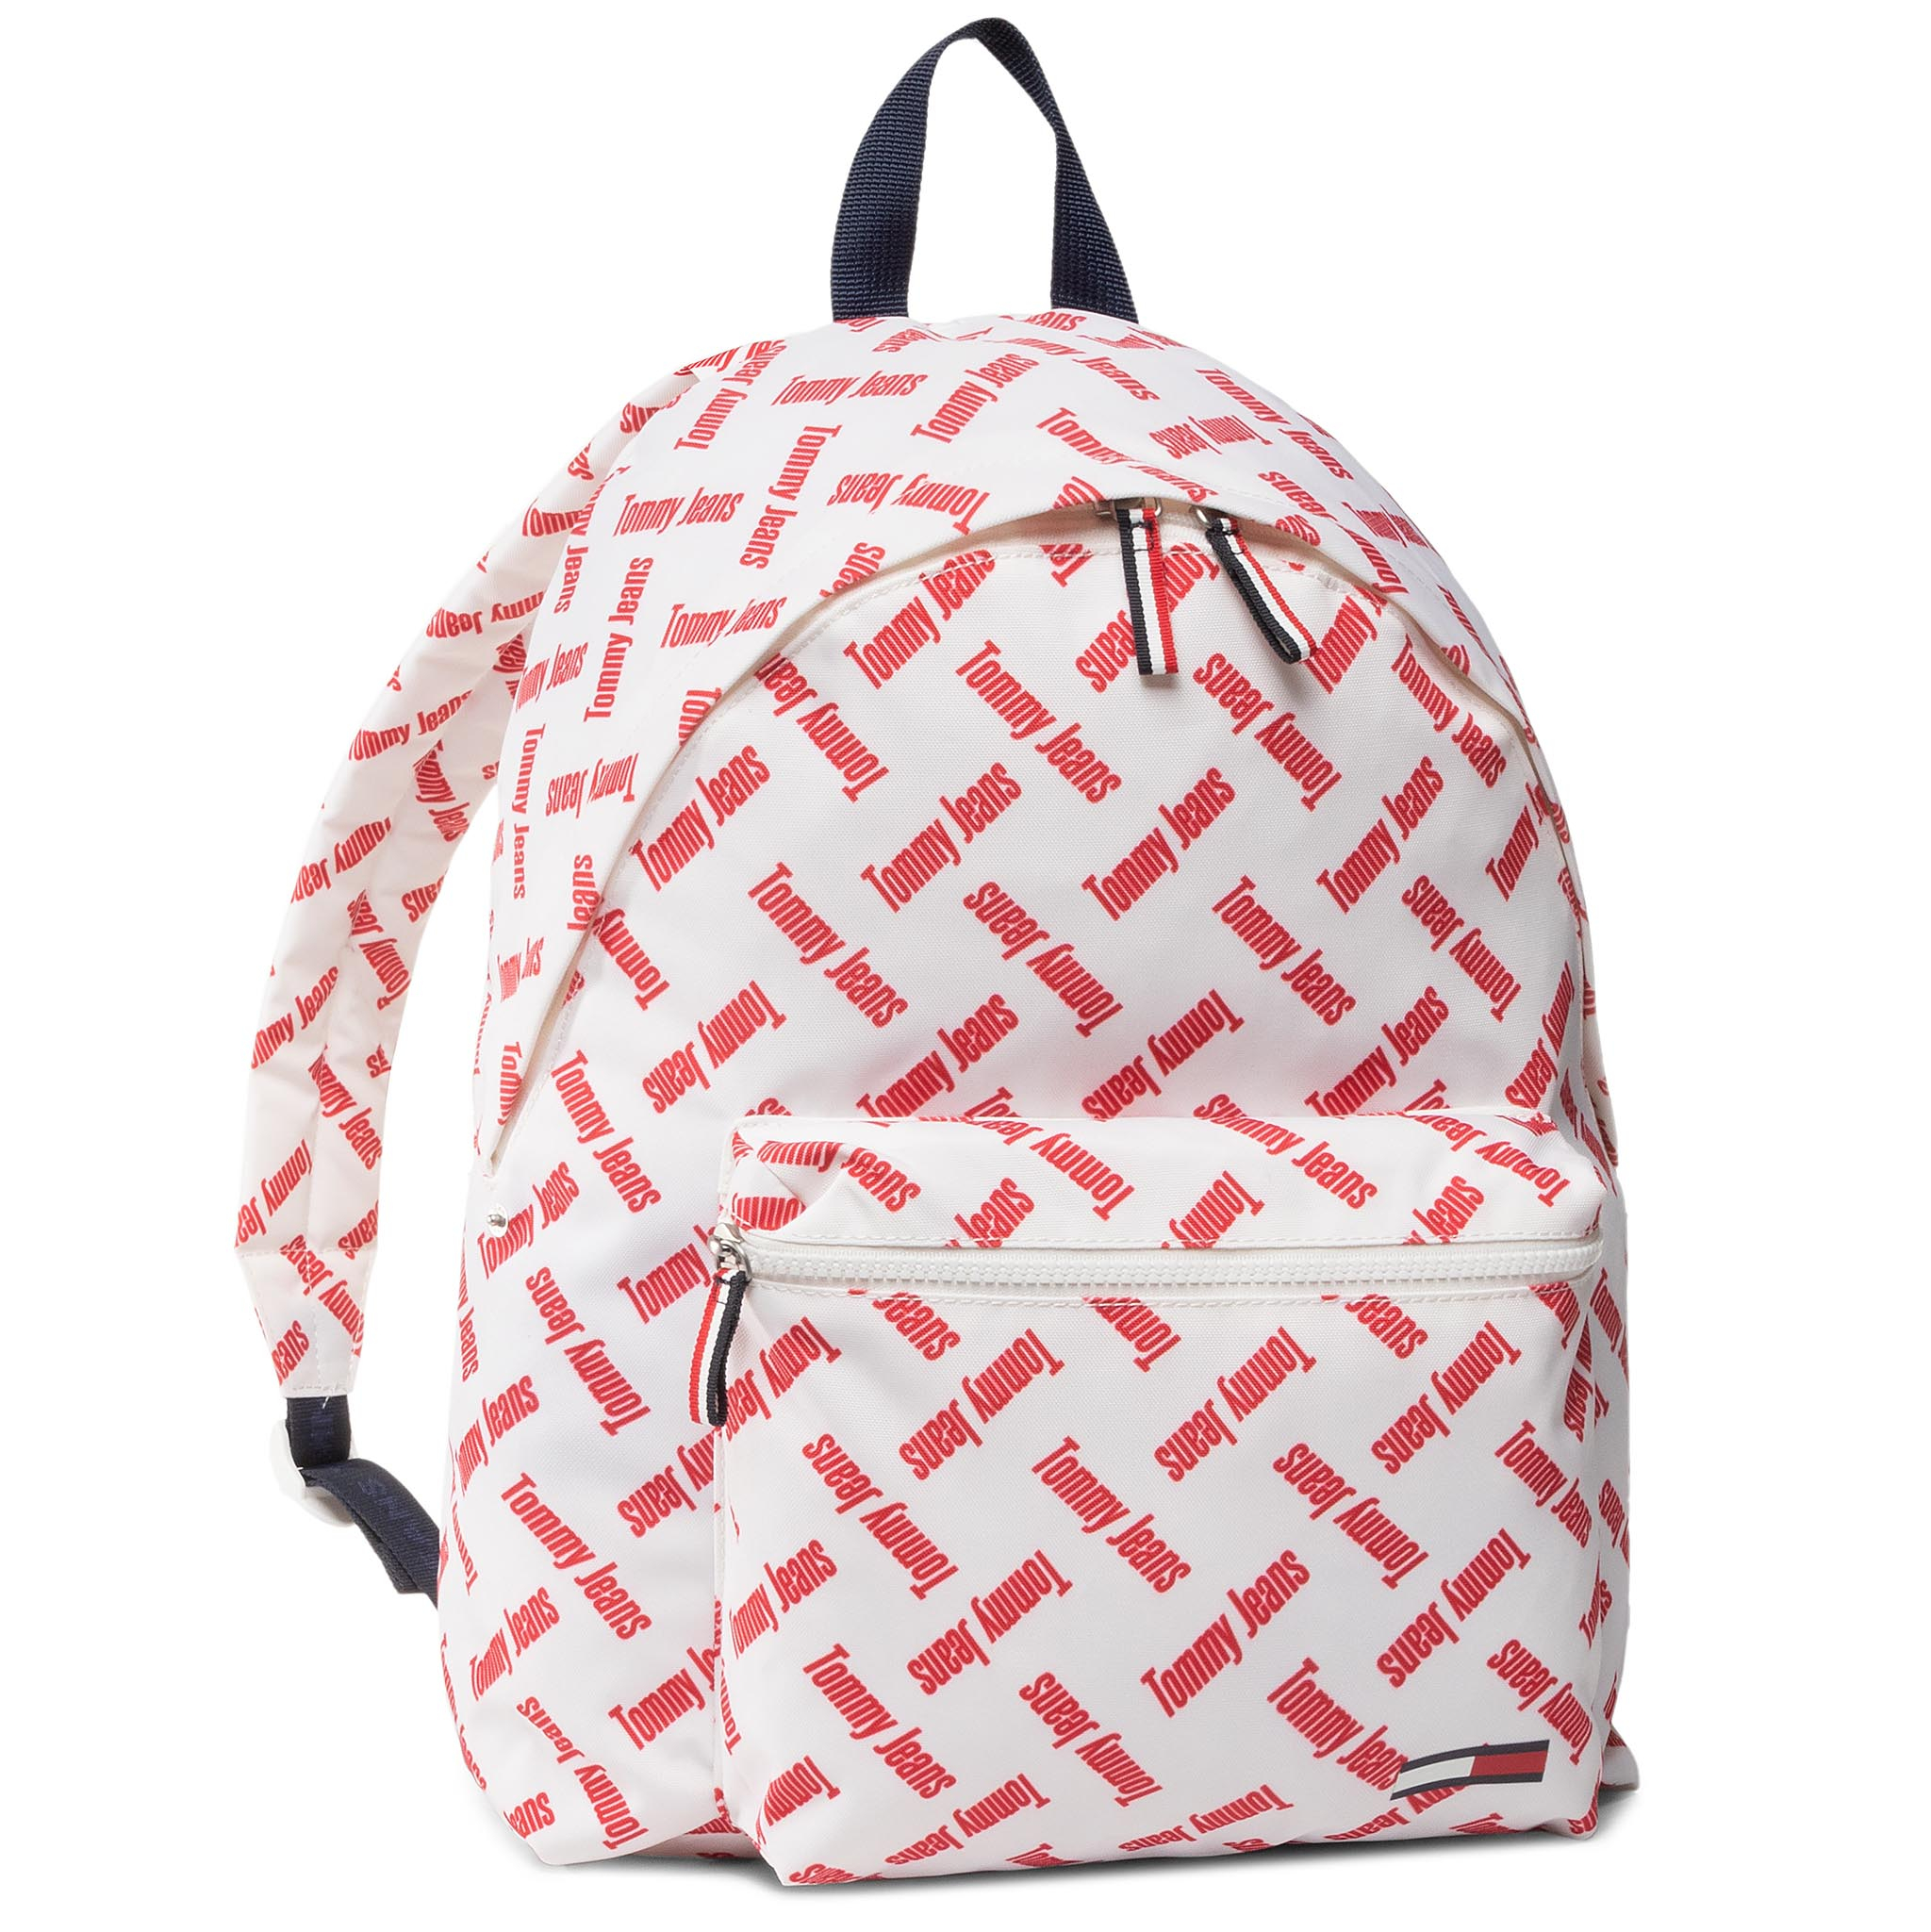 Rucsac Tommy Jeans - Tjw Cool City Backpack Nyl Pnt Aw0aw08250 Mul imagine epantofi.ro 2021